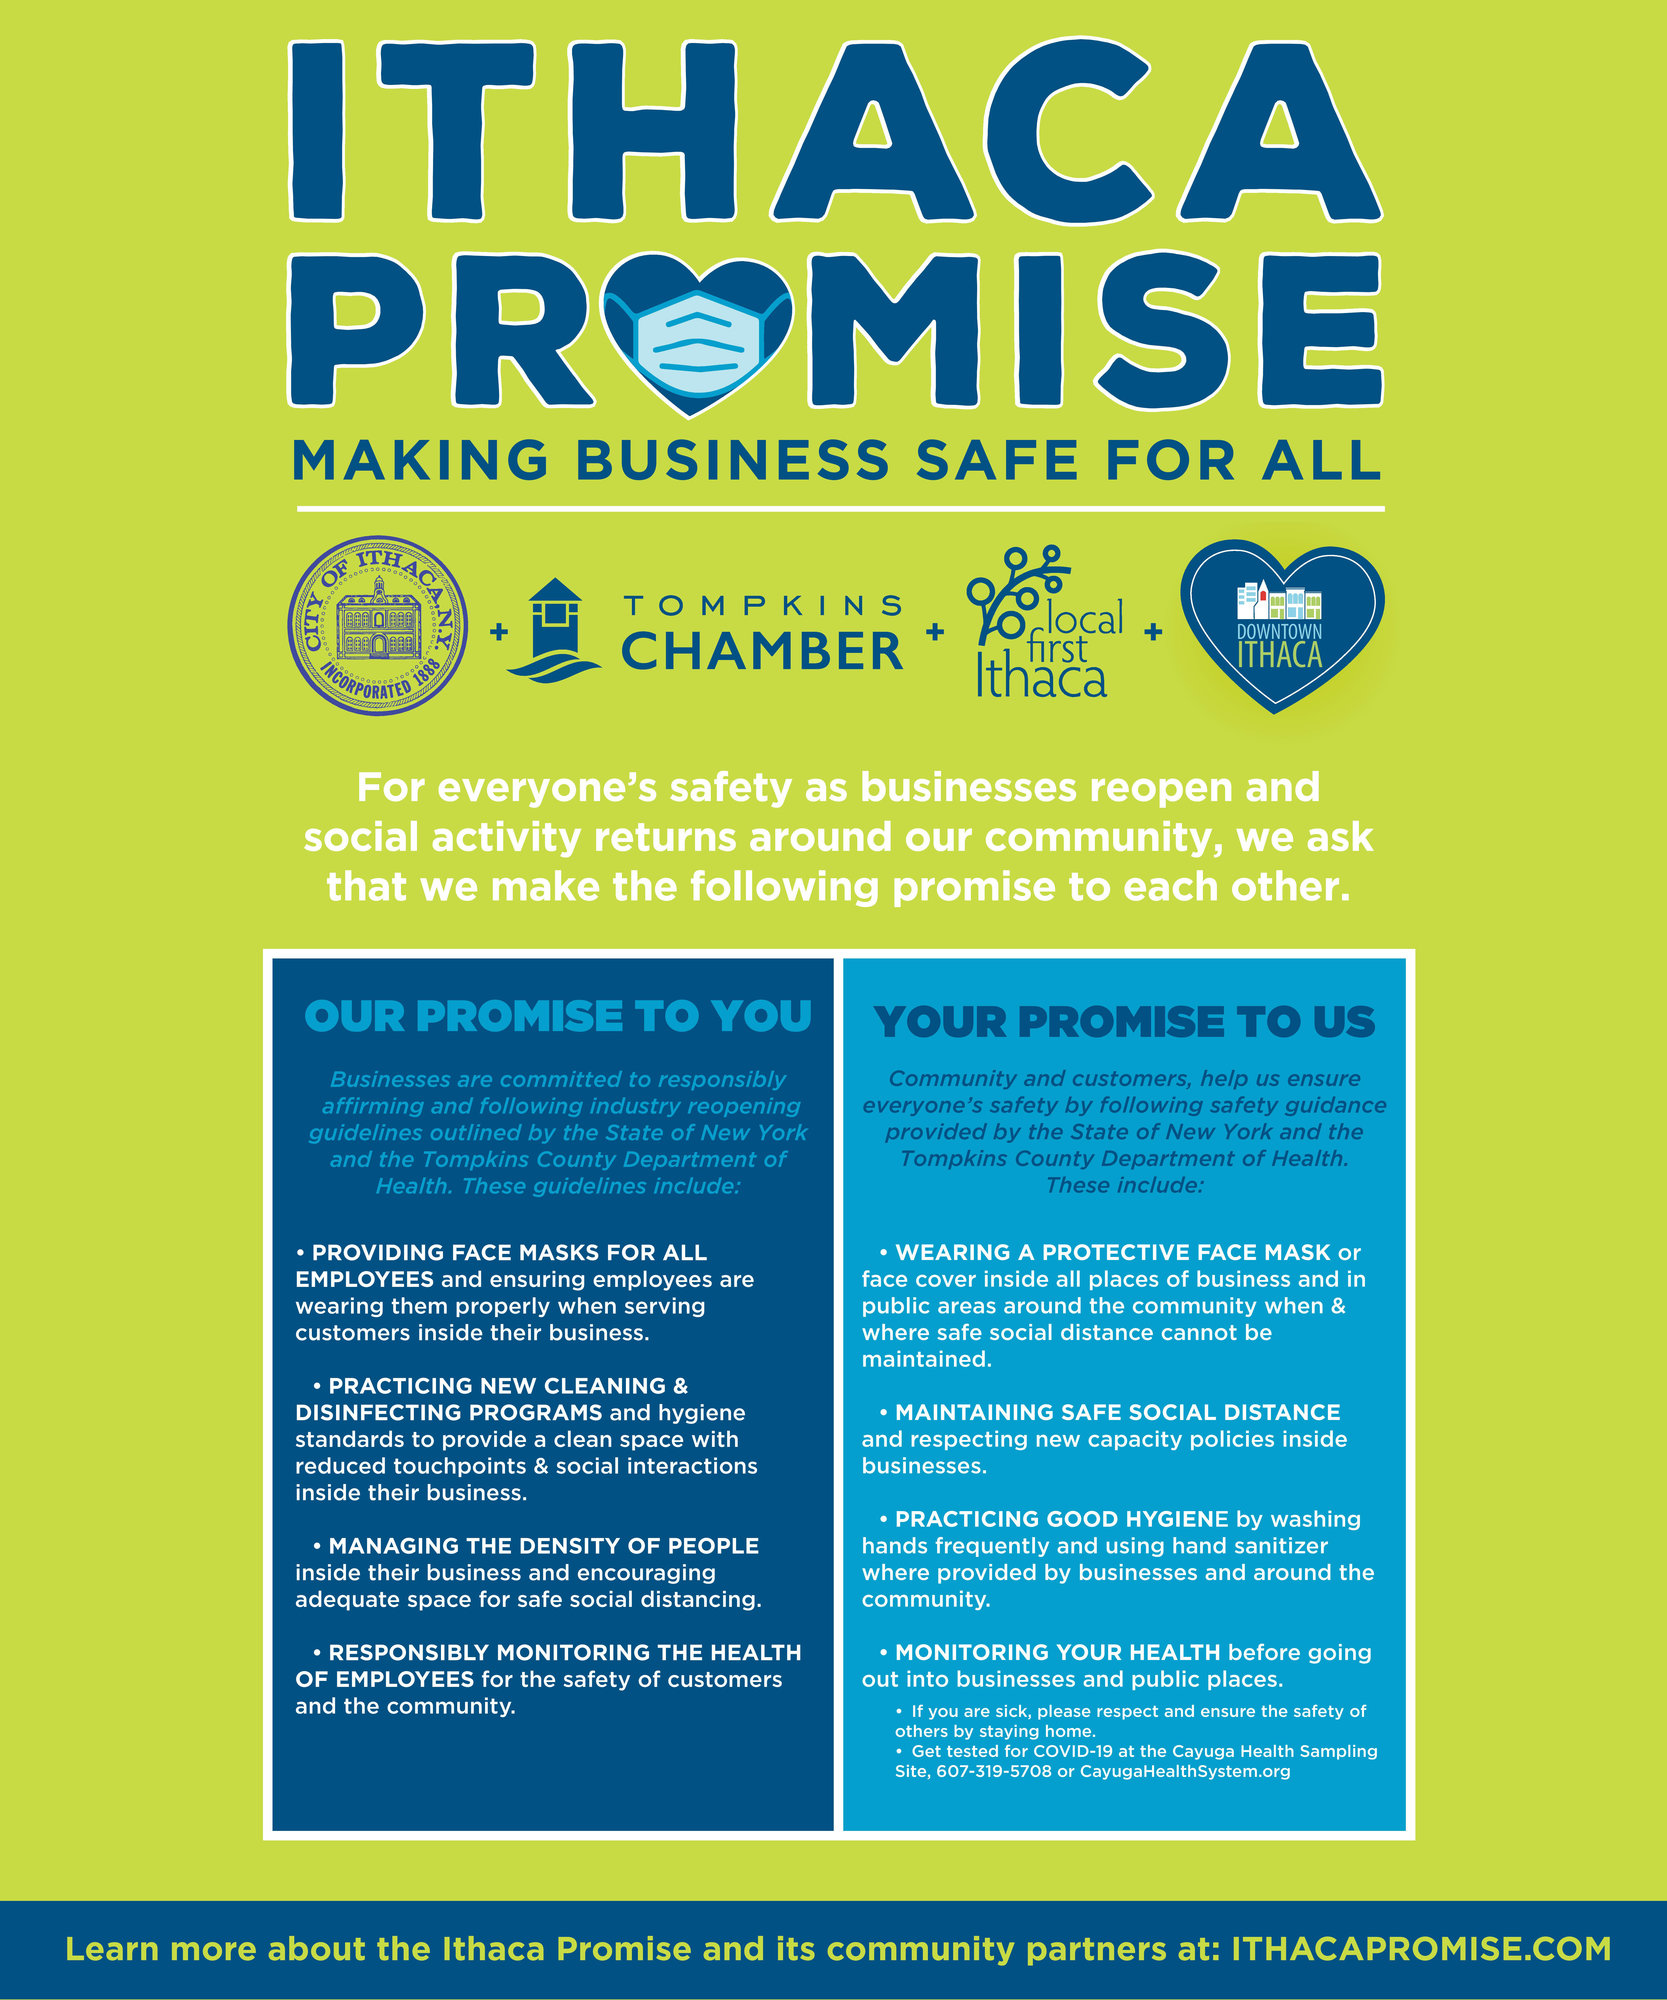 The Ithaca Promise Campaign is a message and promise of commitment among the city of Ithaca, Tompkins Chamber, Local First Ithaca and the DIA for both businesses and consumers to follow health and safety guidelines during reopening.